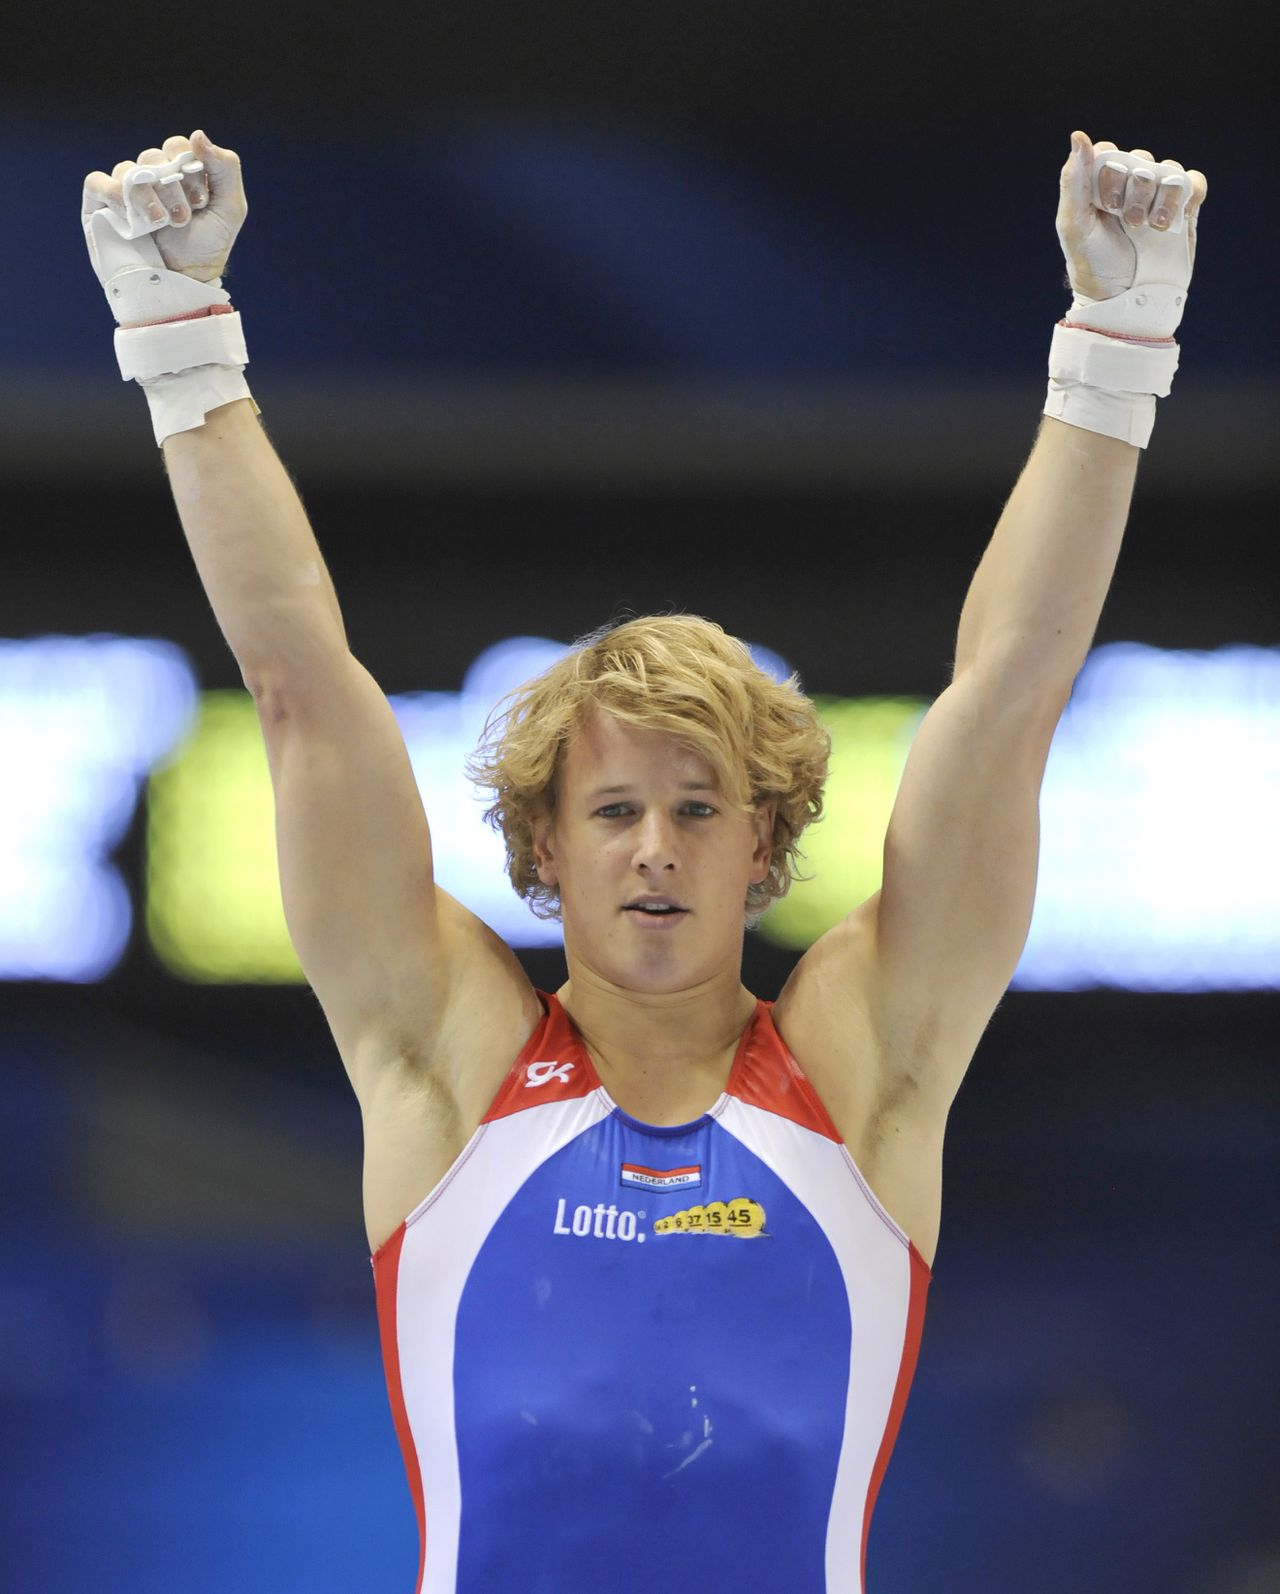 Epke Zonderland of the Netherlands reacts after his performance with the horizontal bar during men's qualification at the world gymnastics championships in Tokyo on October 9, 2011. The top eight men's teams will advance to the finals and earn berths in next year's London Olympics. AFP PHOTO/KAZUHIRO NOGI